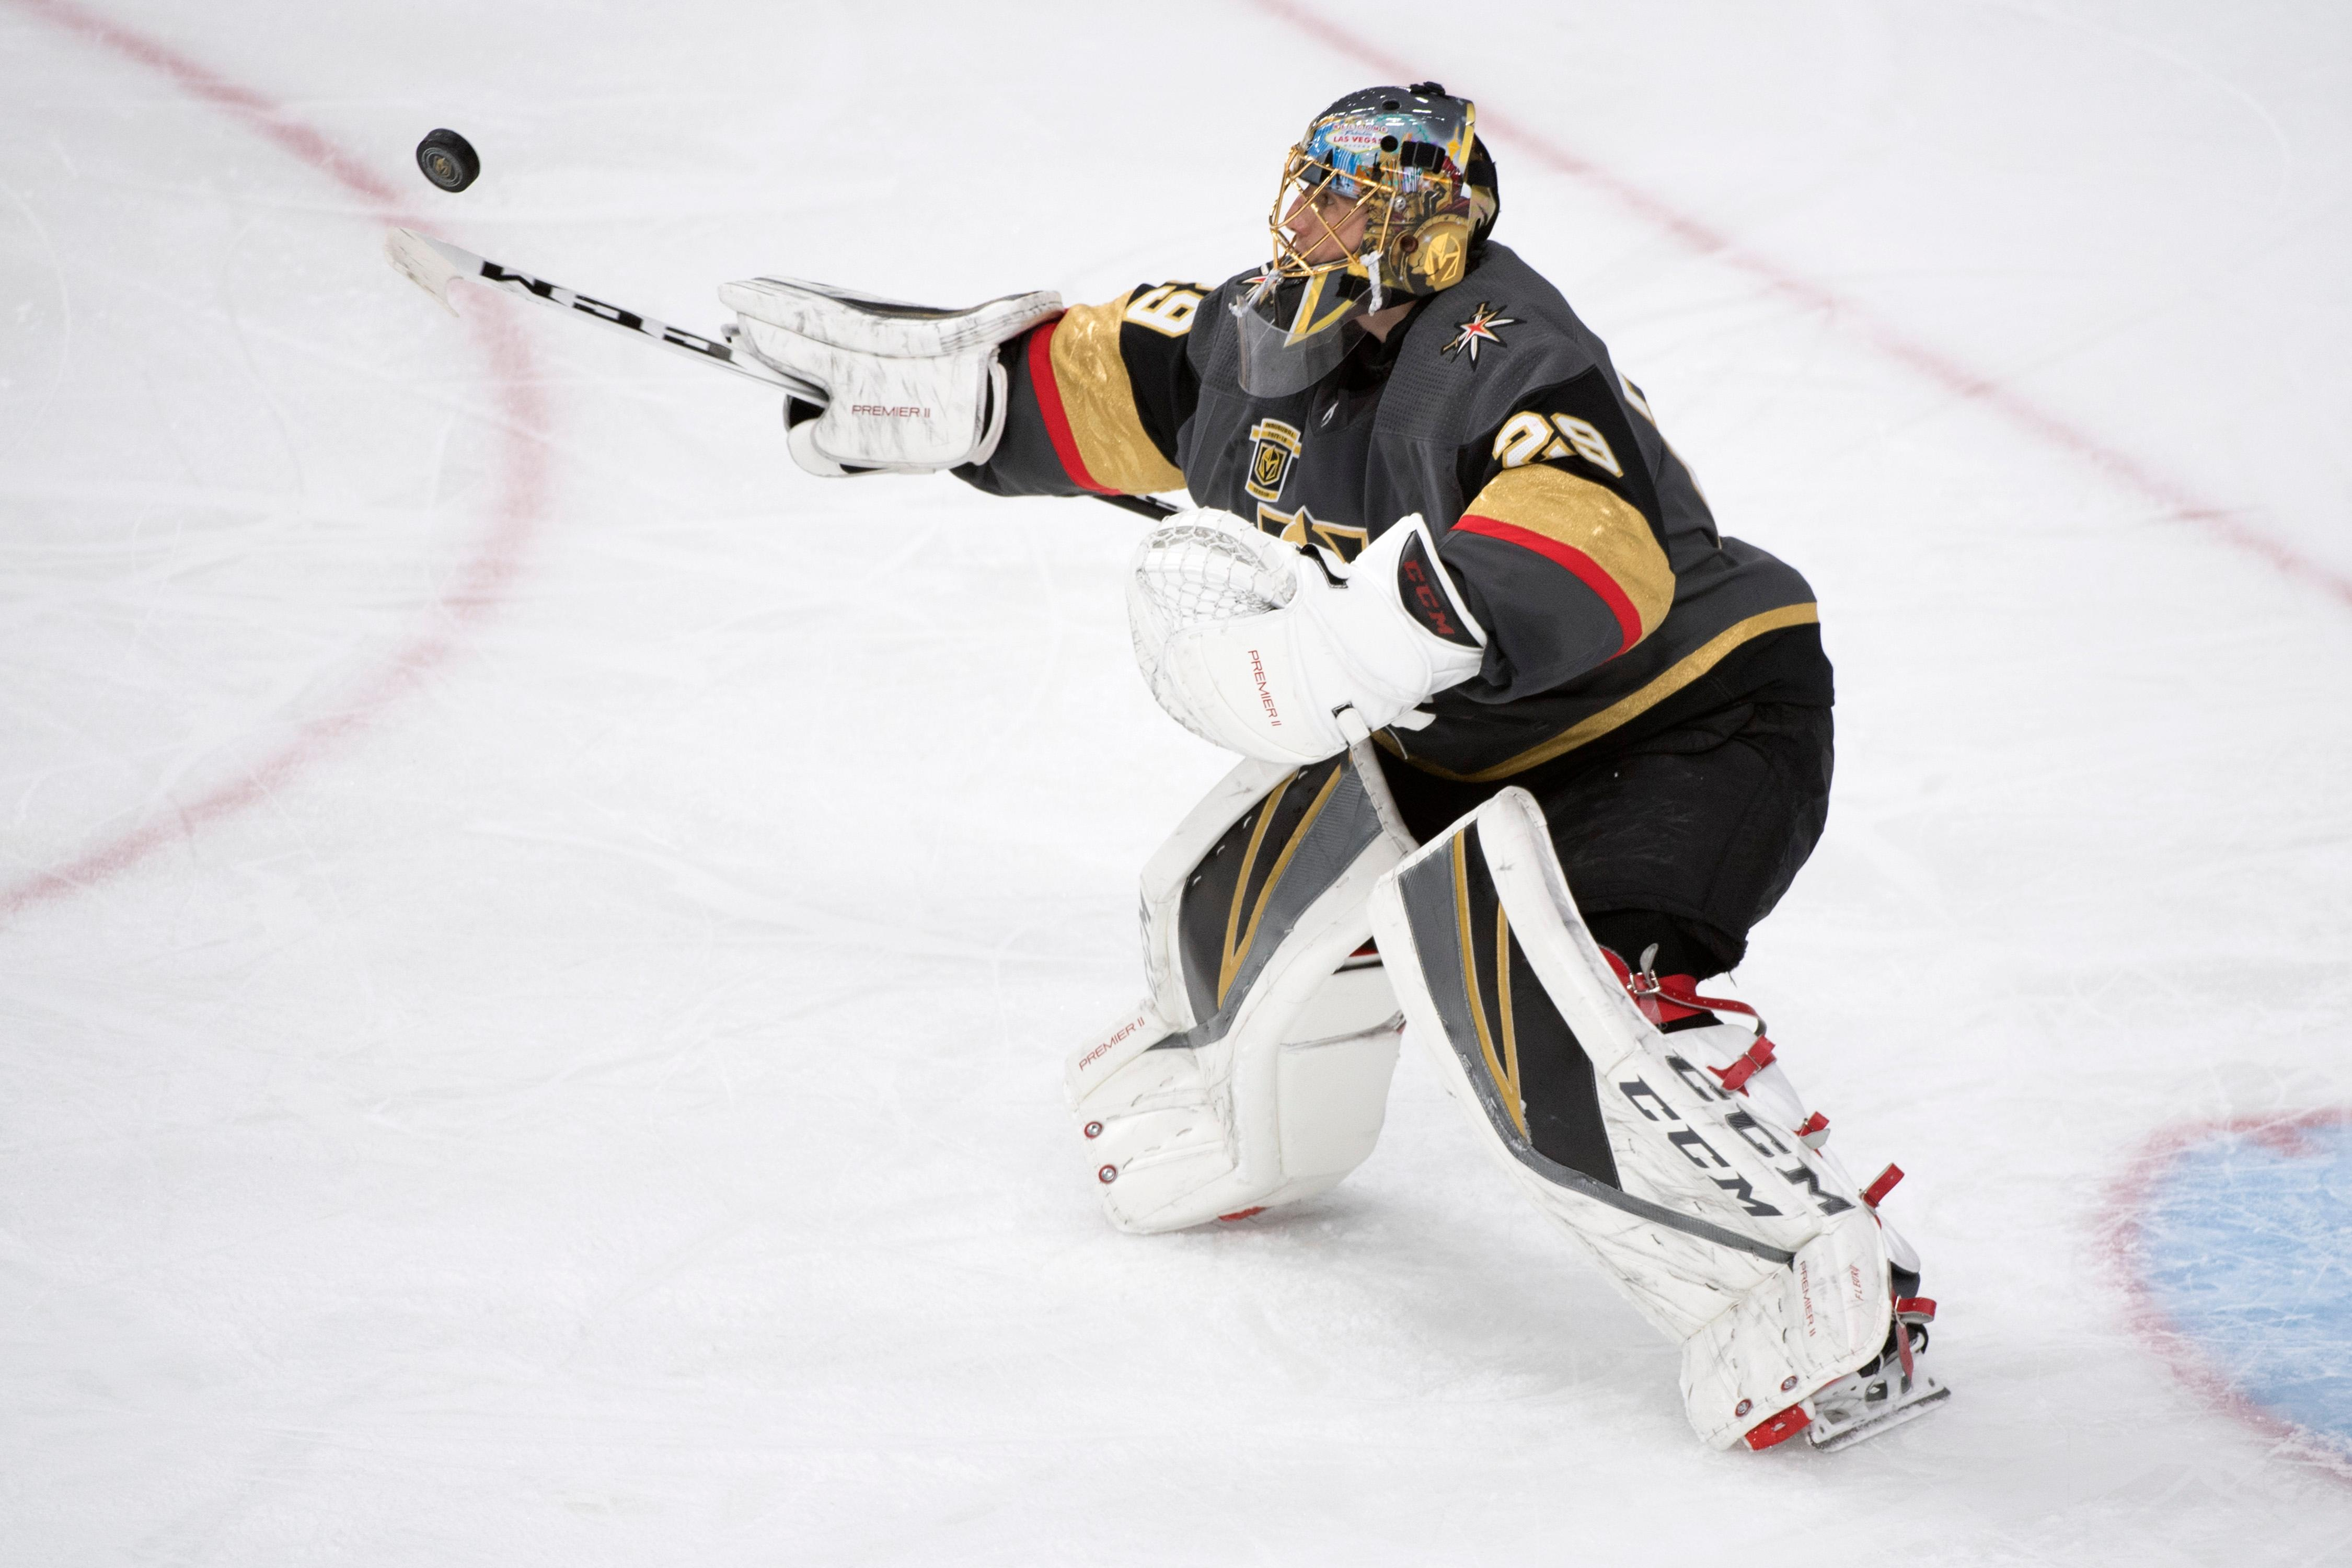 Vegas Golden Knights goaltender Marc-Andre Fleury (29) juggles the puck with his stick during the second period of Game 1 of their NHL hockey first-round playoff series against the Los Angeles Kings Wednesday, April 11, 2018 at T-Mobile Arena. The Knights won 1-0. CREDIT: Sam Morris/Las Vegas News Bureau